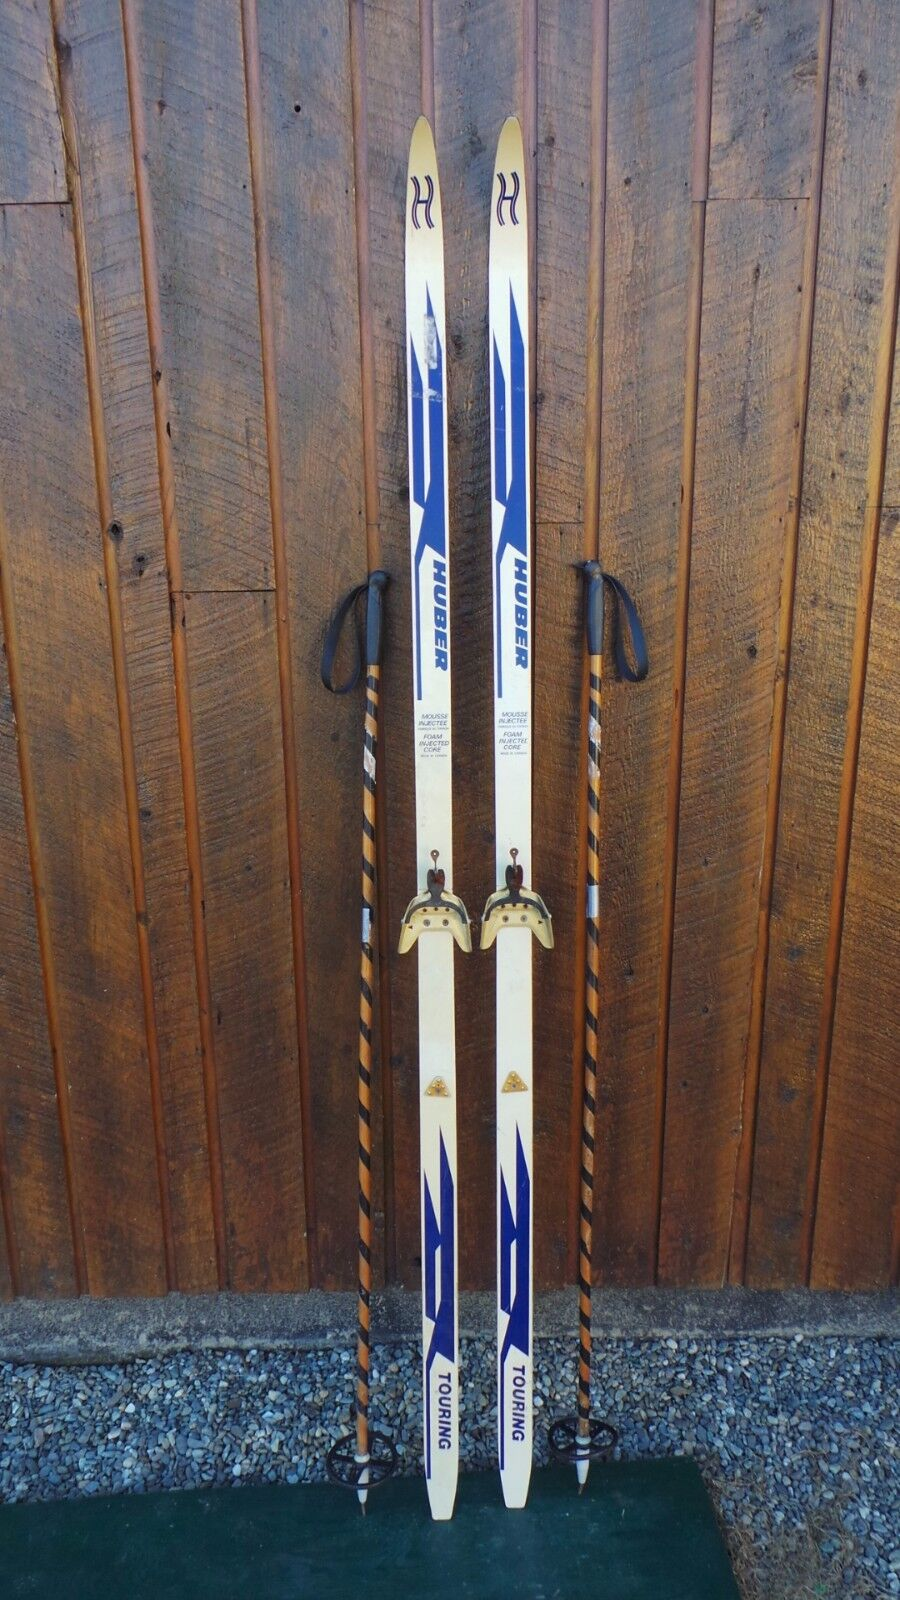 Ready to Use Cross Country 79  Long HUBER 205 cm Skis +  Poles